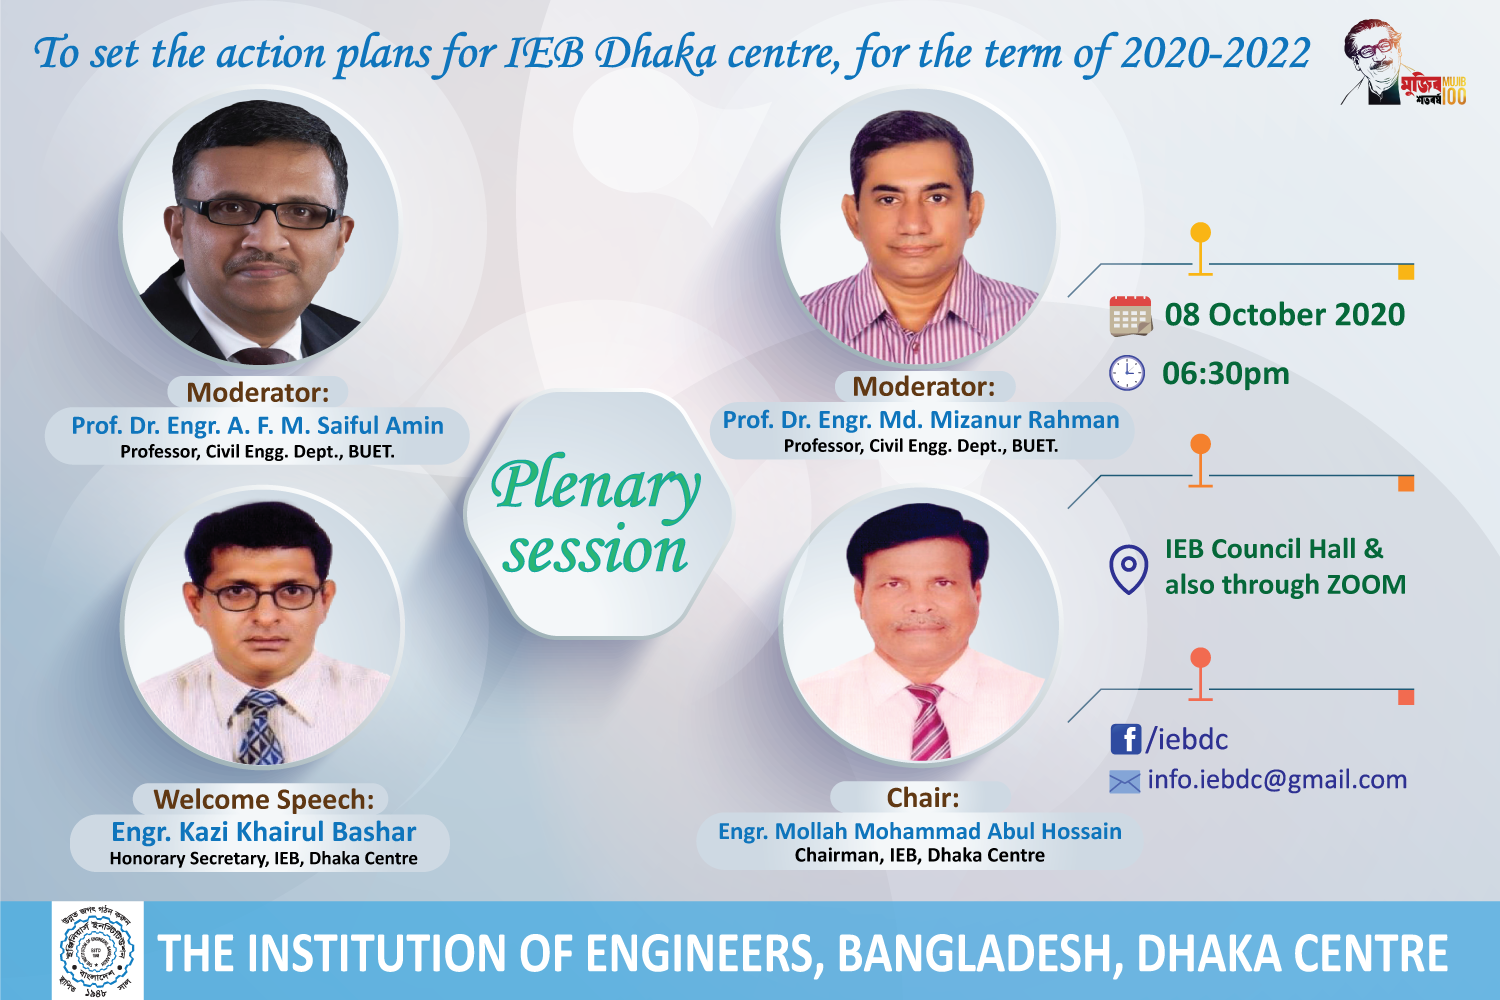 Plenary Session to set action plans for IEB Dhaka centre, for the term of 2020-2022